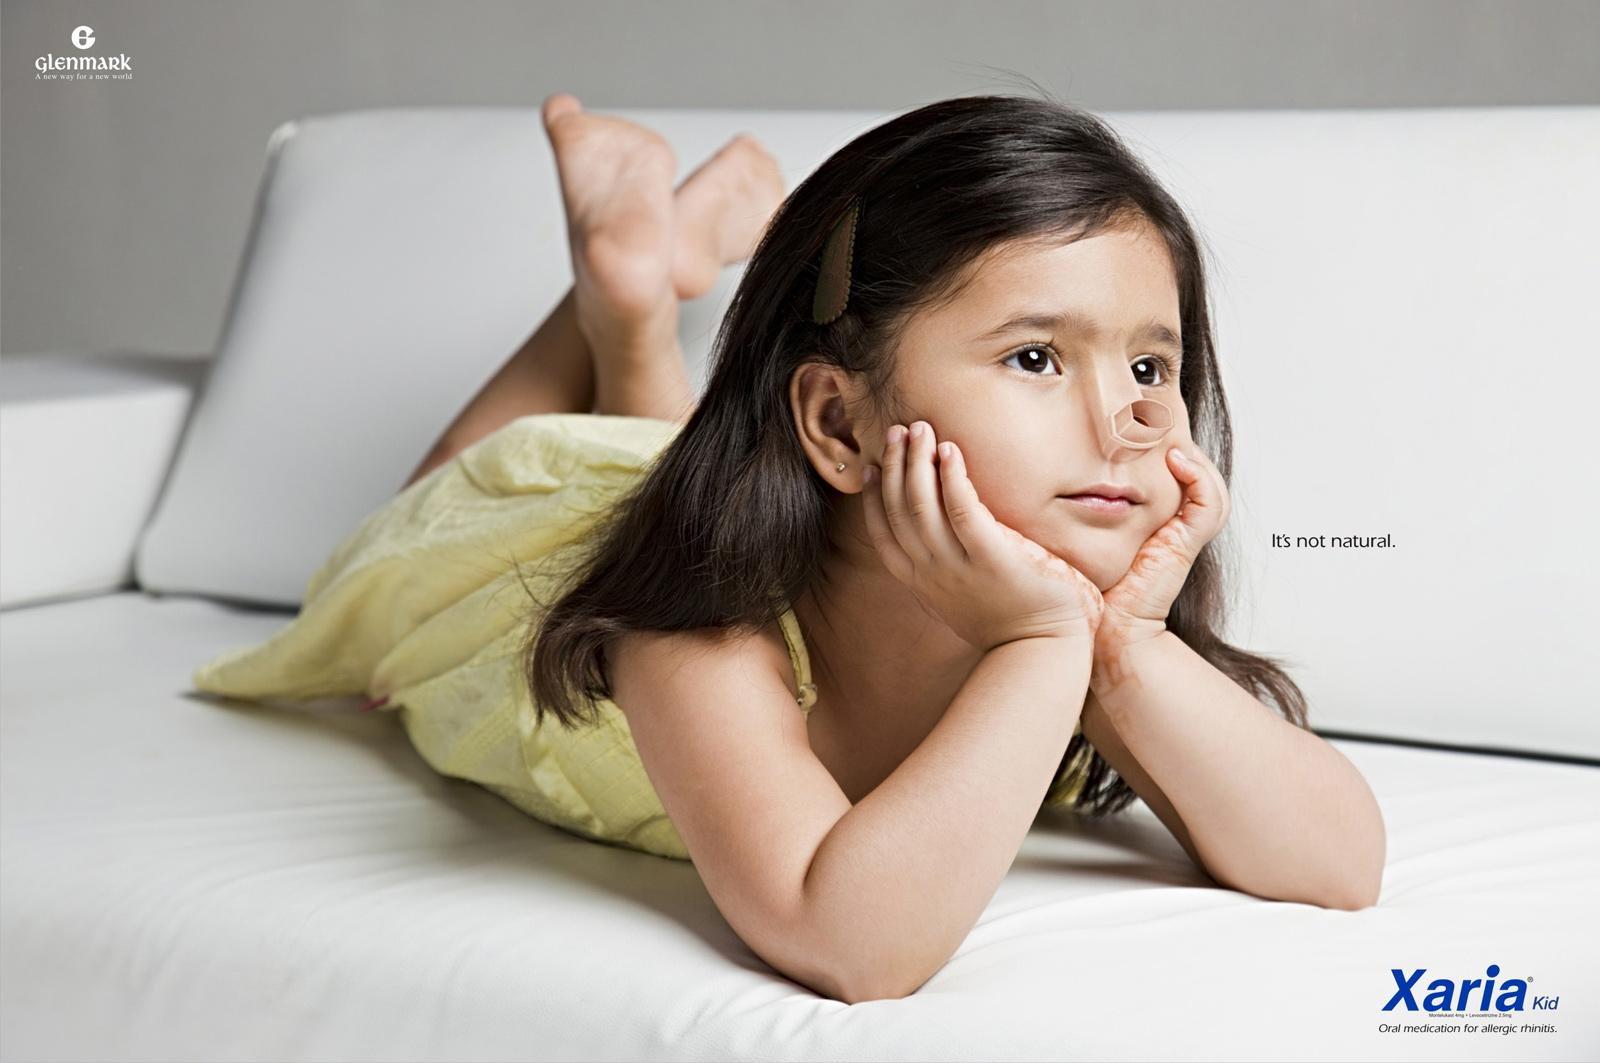 Xaria Kid Print Ad -  It's not natural, 1